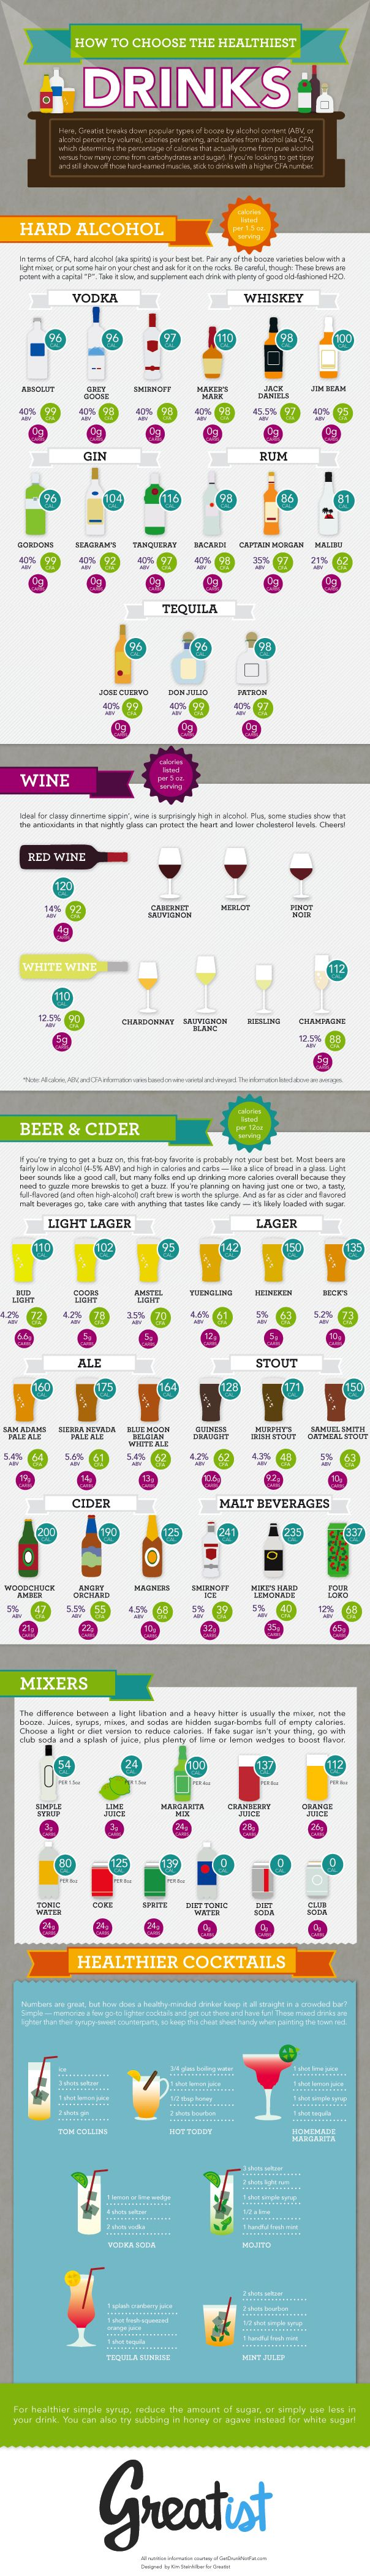 How to choose the healthiest drinks! Patients ask us about this all the time. Easy reference sheet.